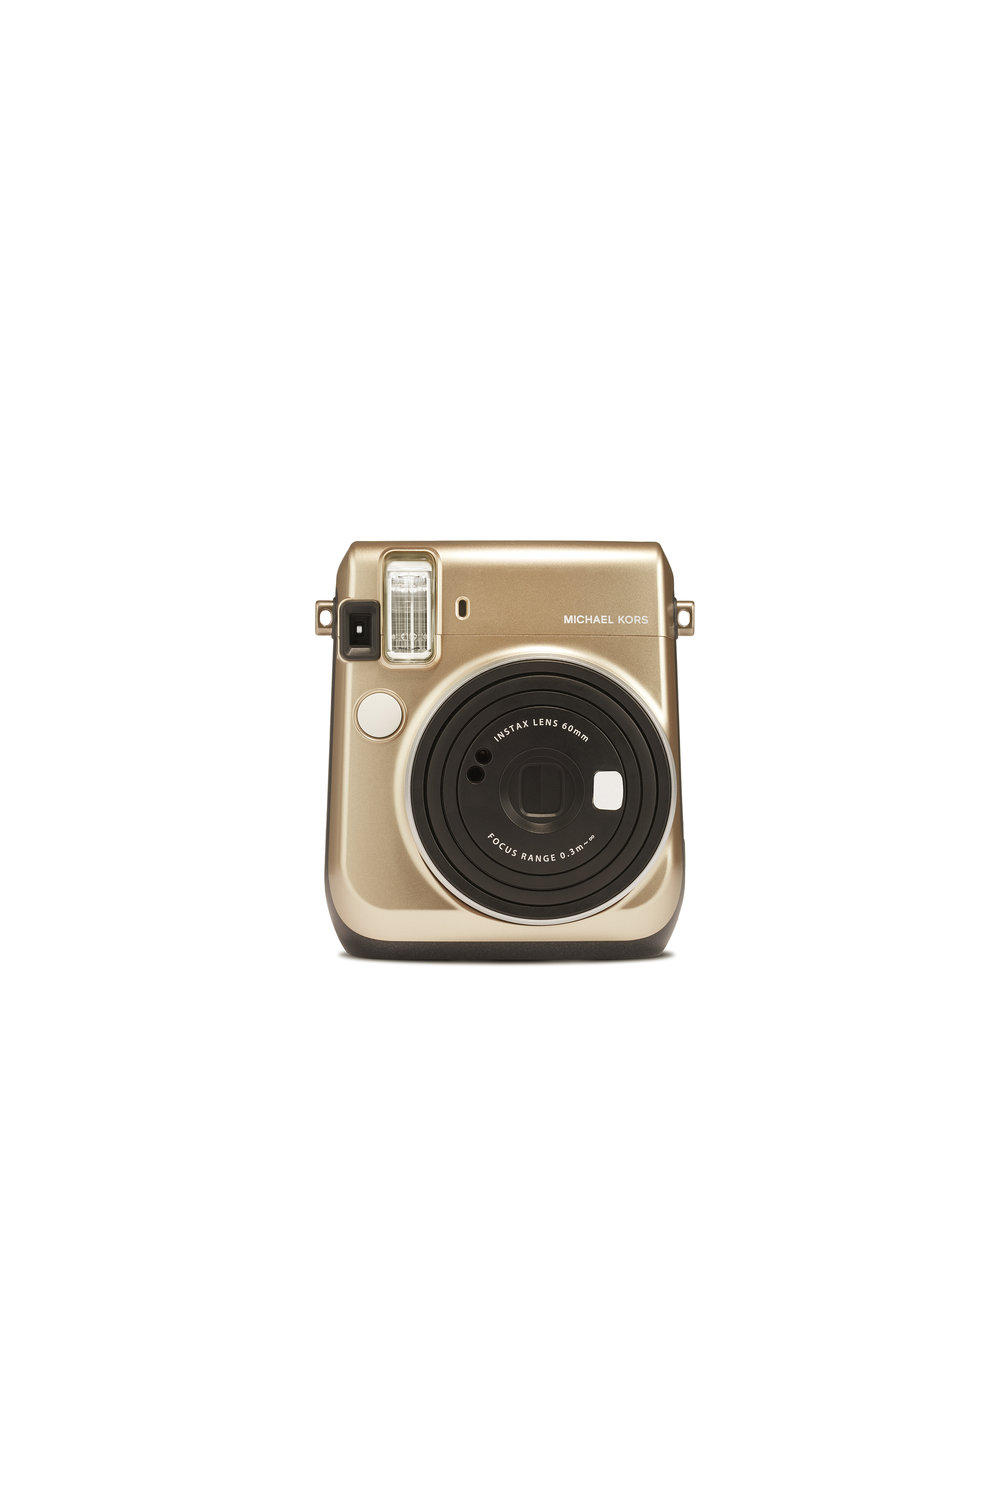 HO16_MK x FUJIFILM INSTAX COLLABORATION CAMERA_FRONT.jpg